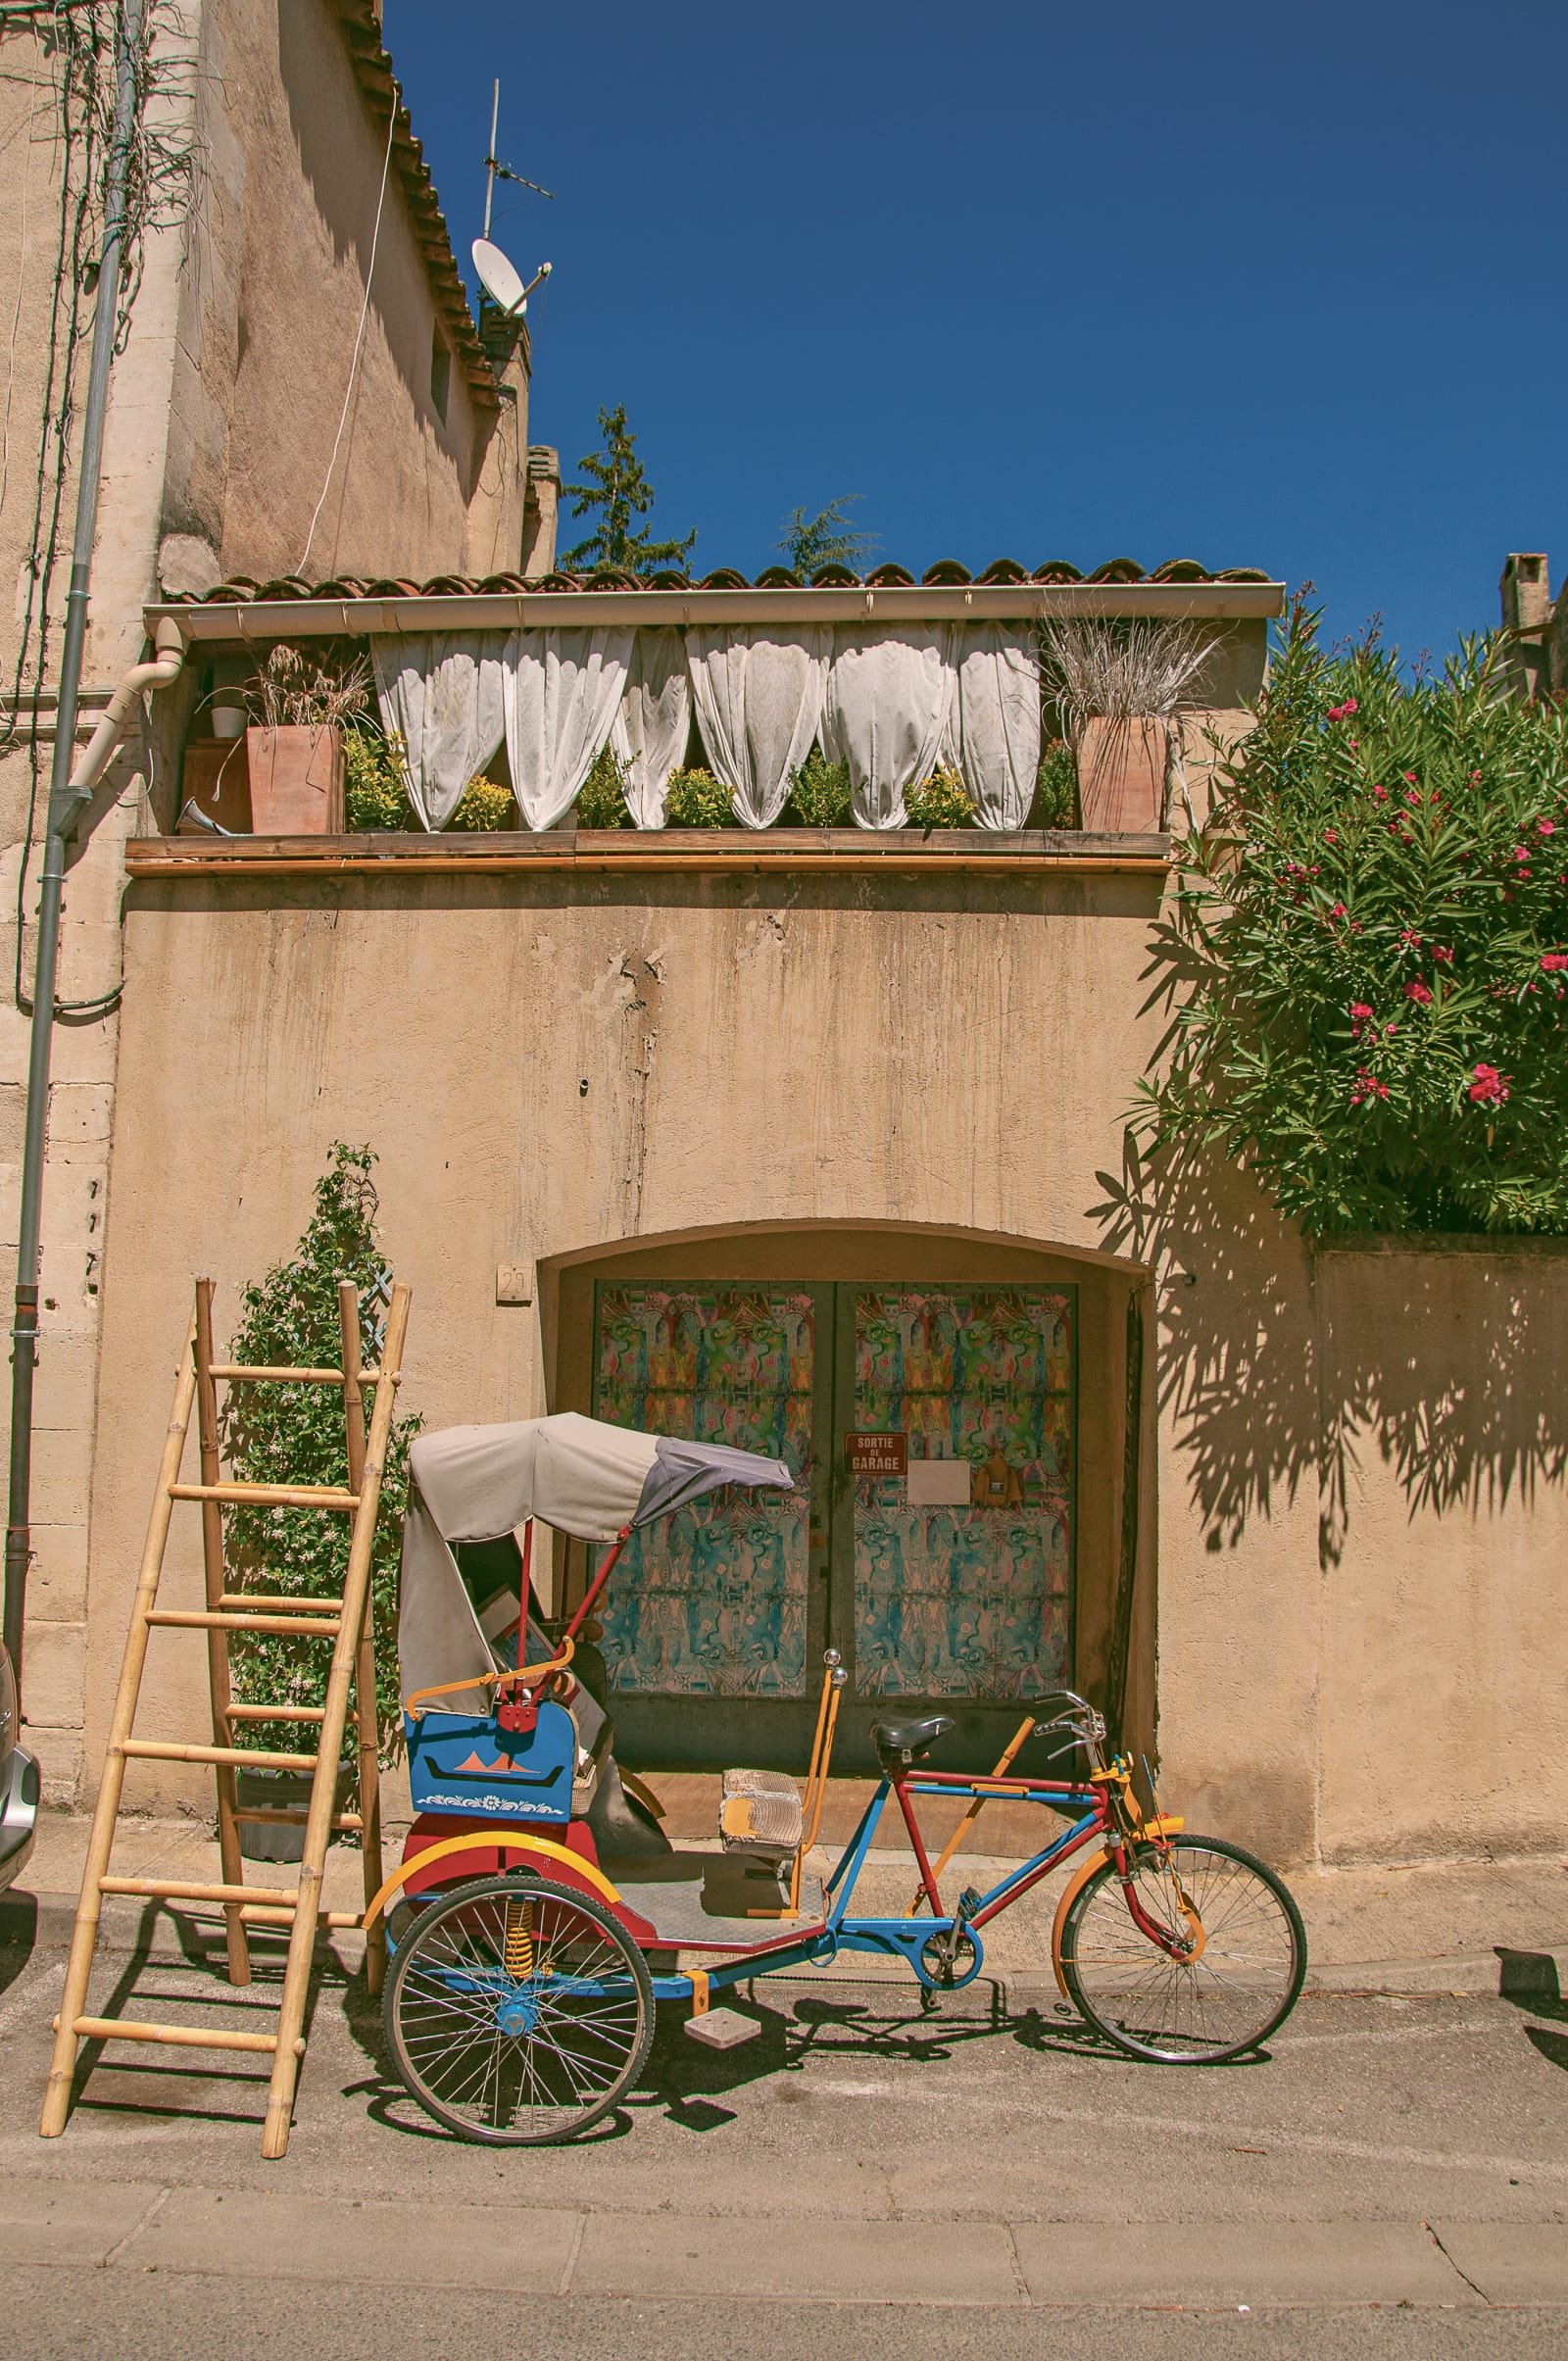 Amazing Places To Visit In The South Of France Hand Luggage - 12 amazing world heritage sites you have to visit